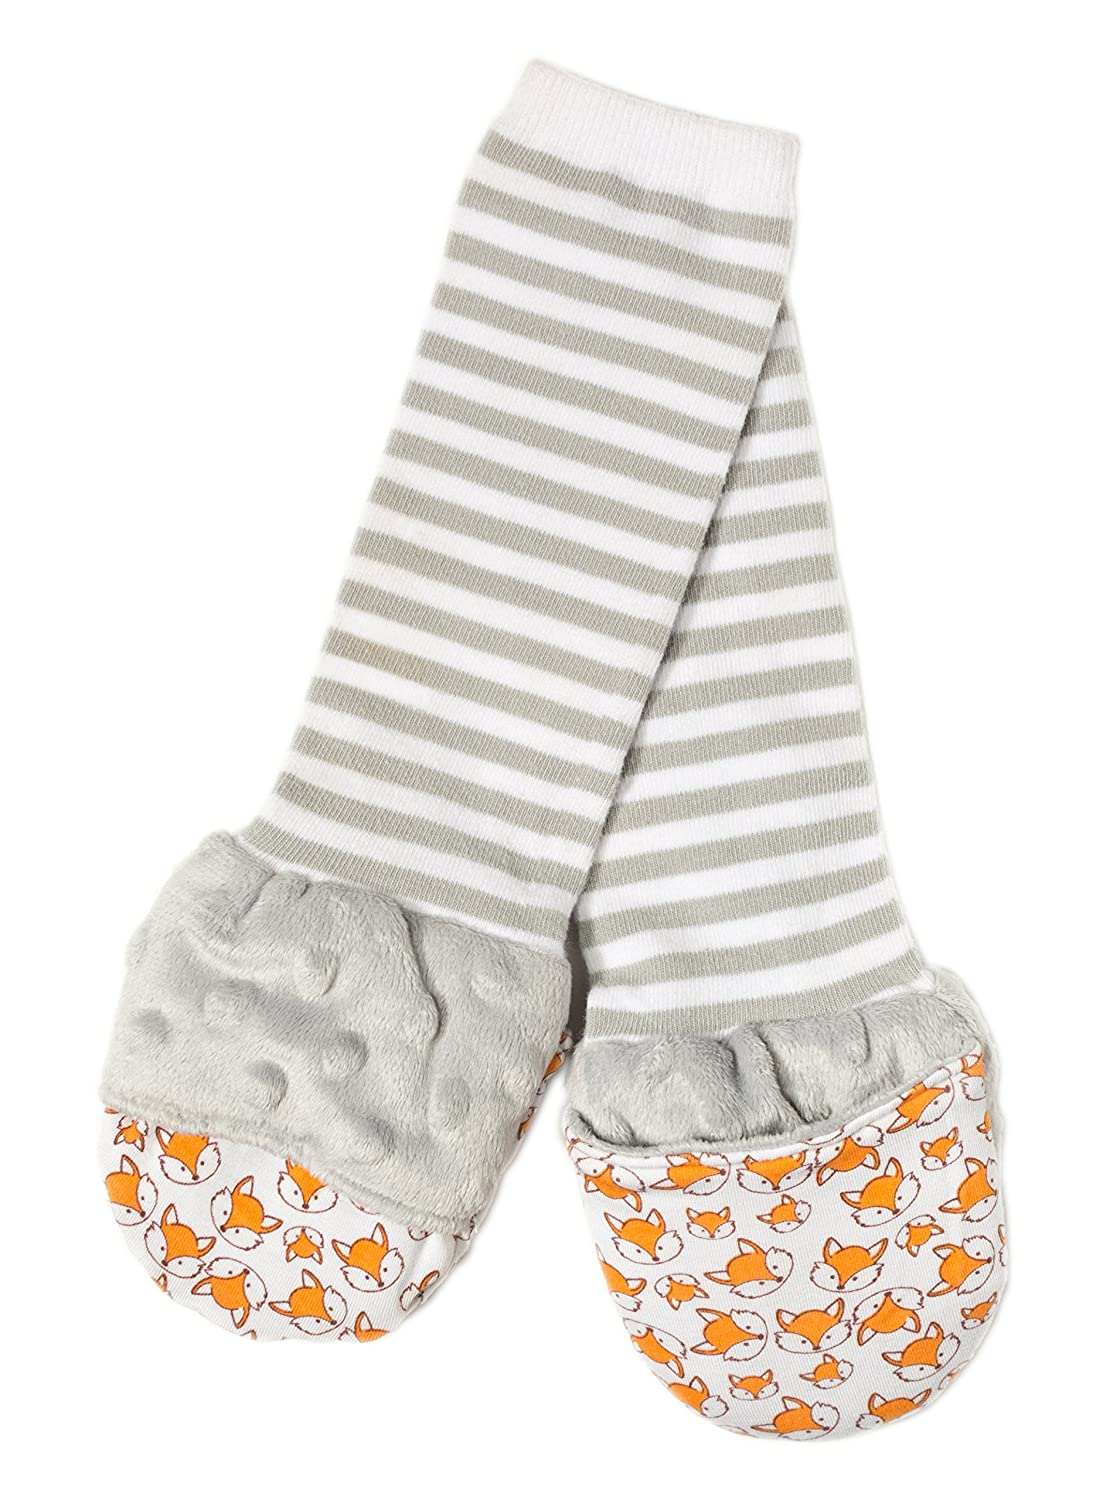 Handsocks Plushy Stay On Strap-Free No-Scratch & Warmth Baby & Kid Mittens (Small (0-6 Months), Felix(Grey/Foxes))